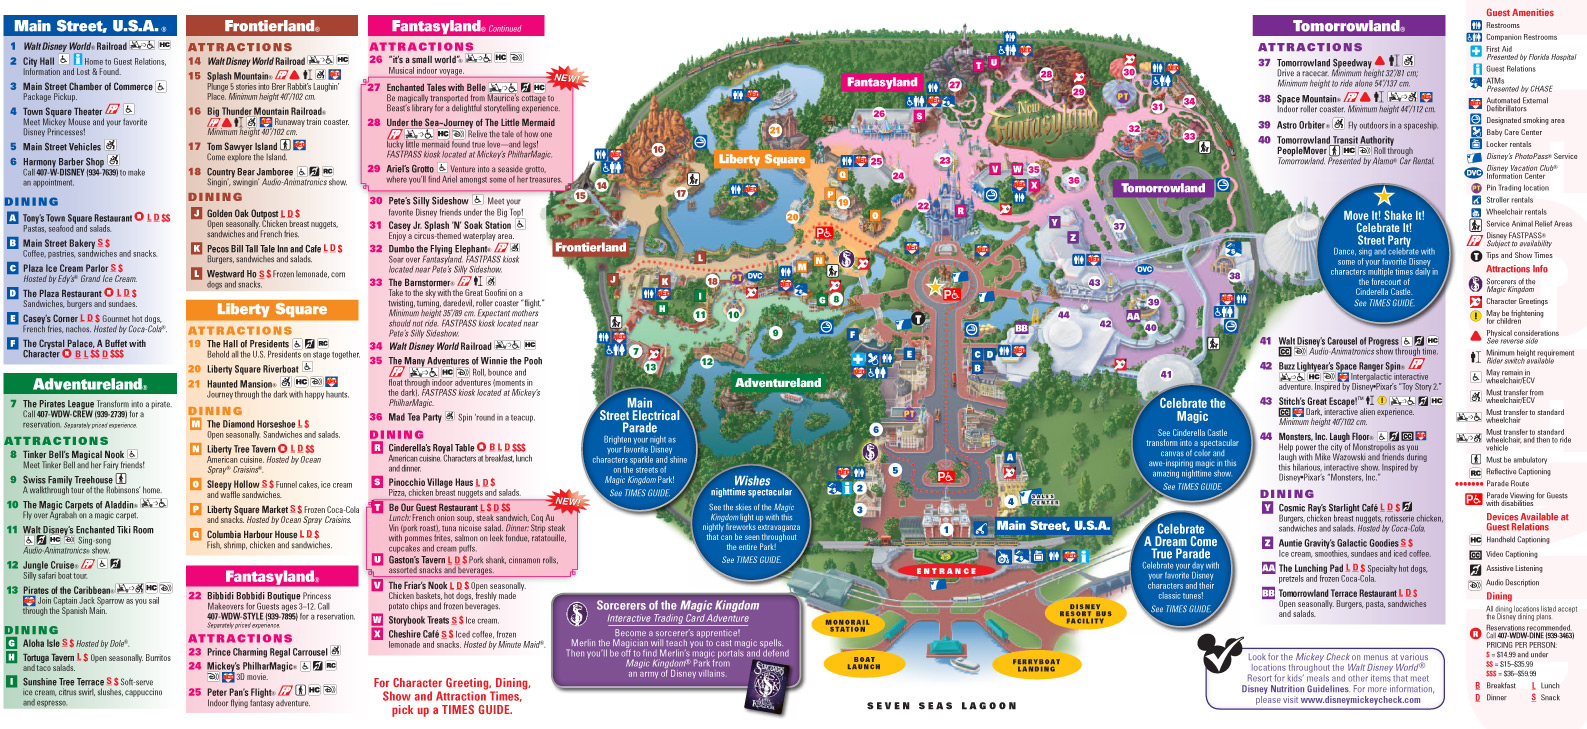 All New 2013 Walt Disney World Park Maps - Chip and Co Disney Park Map on disney rides, disney directions, disney world grounds map, disney magic kingdom, disney water parks, disney princess maps, at&t park maps, disney resort maps, disney land map, disney city, walt disney world maps, water park attractions maps, downtown disney maps, discovery park maps, disney florida map, disney character locations, disney property maps, disney parking lot maps, disney area map, old theme park maps,